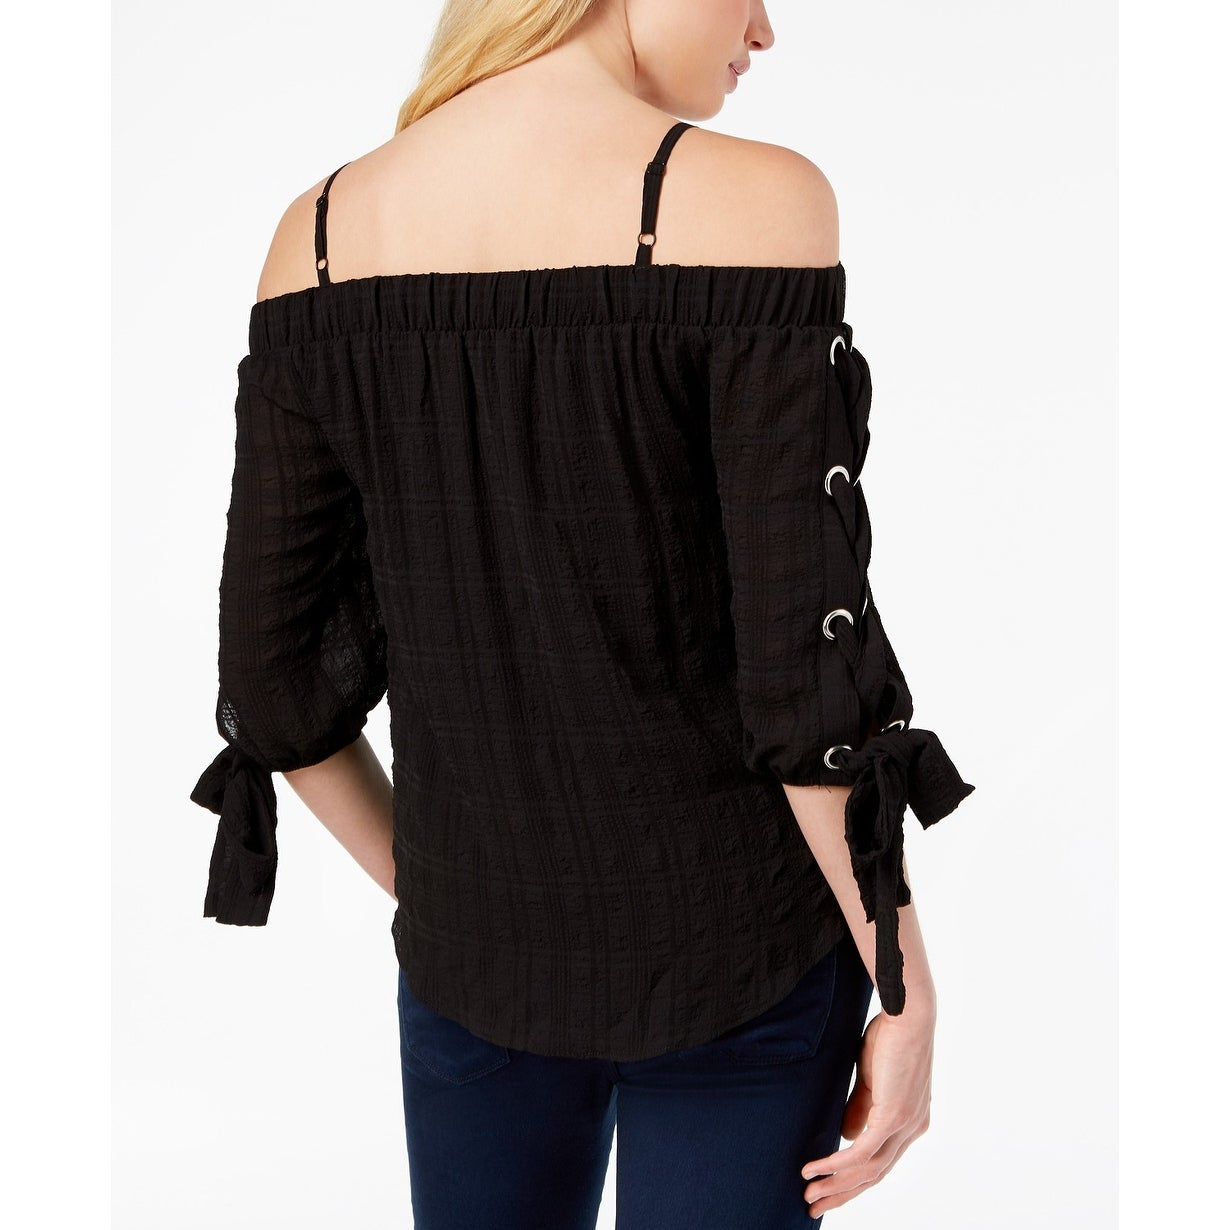 6a4001d74ae Shop XOXO Black Women's Size Medium M Off The Shoulder Tie-Sleeve Blouse -  Free Shipping On Orders Over $45 - Overstock - 28268037